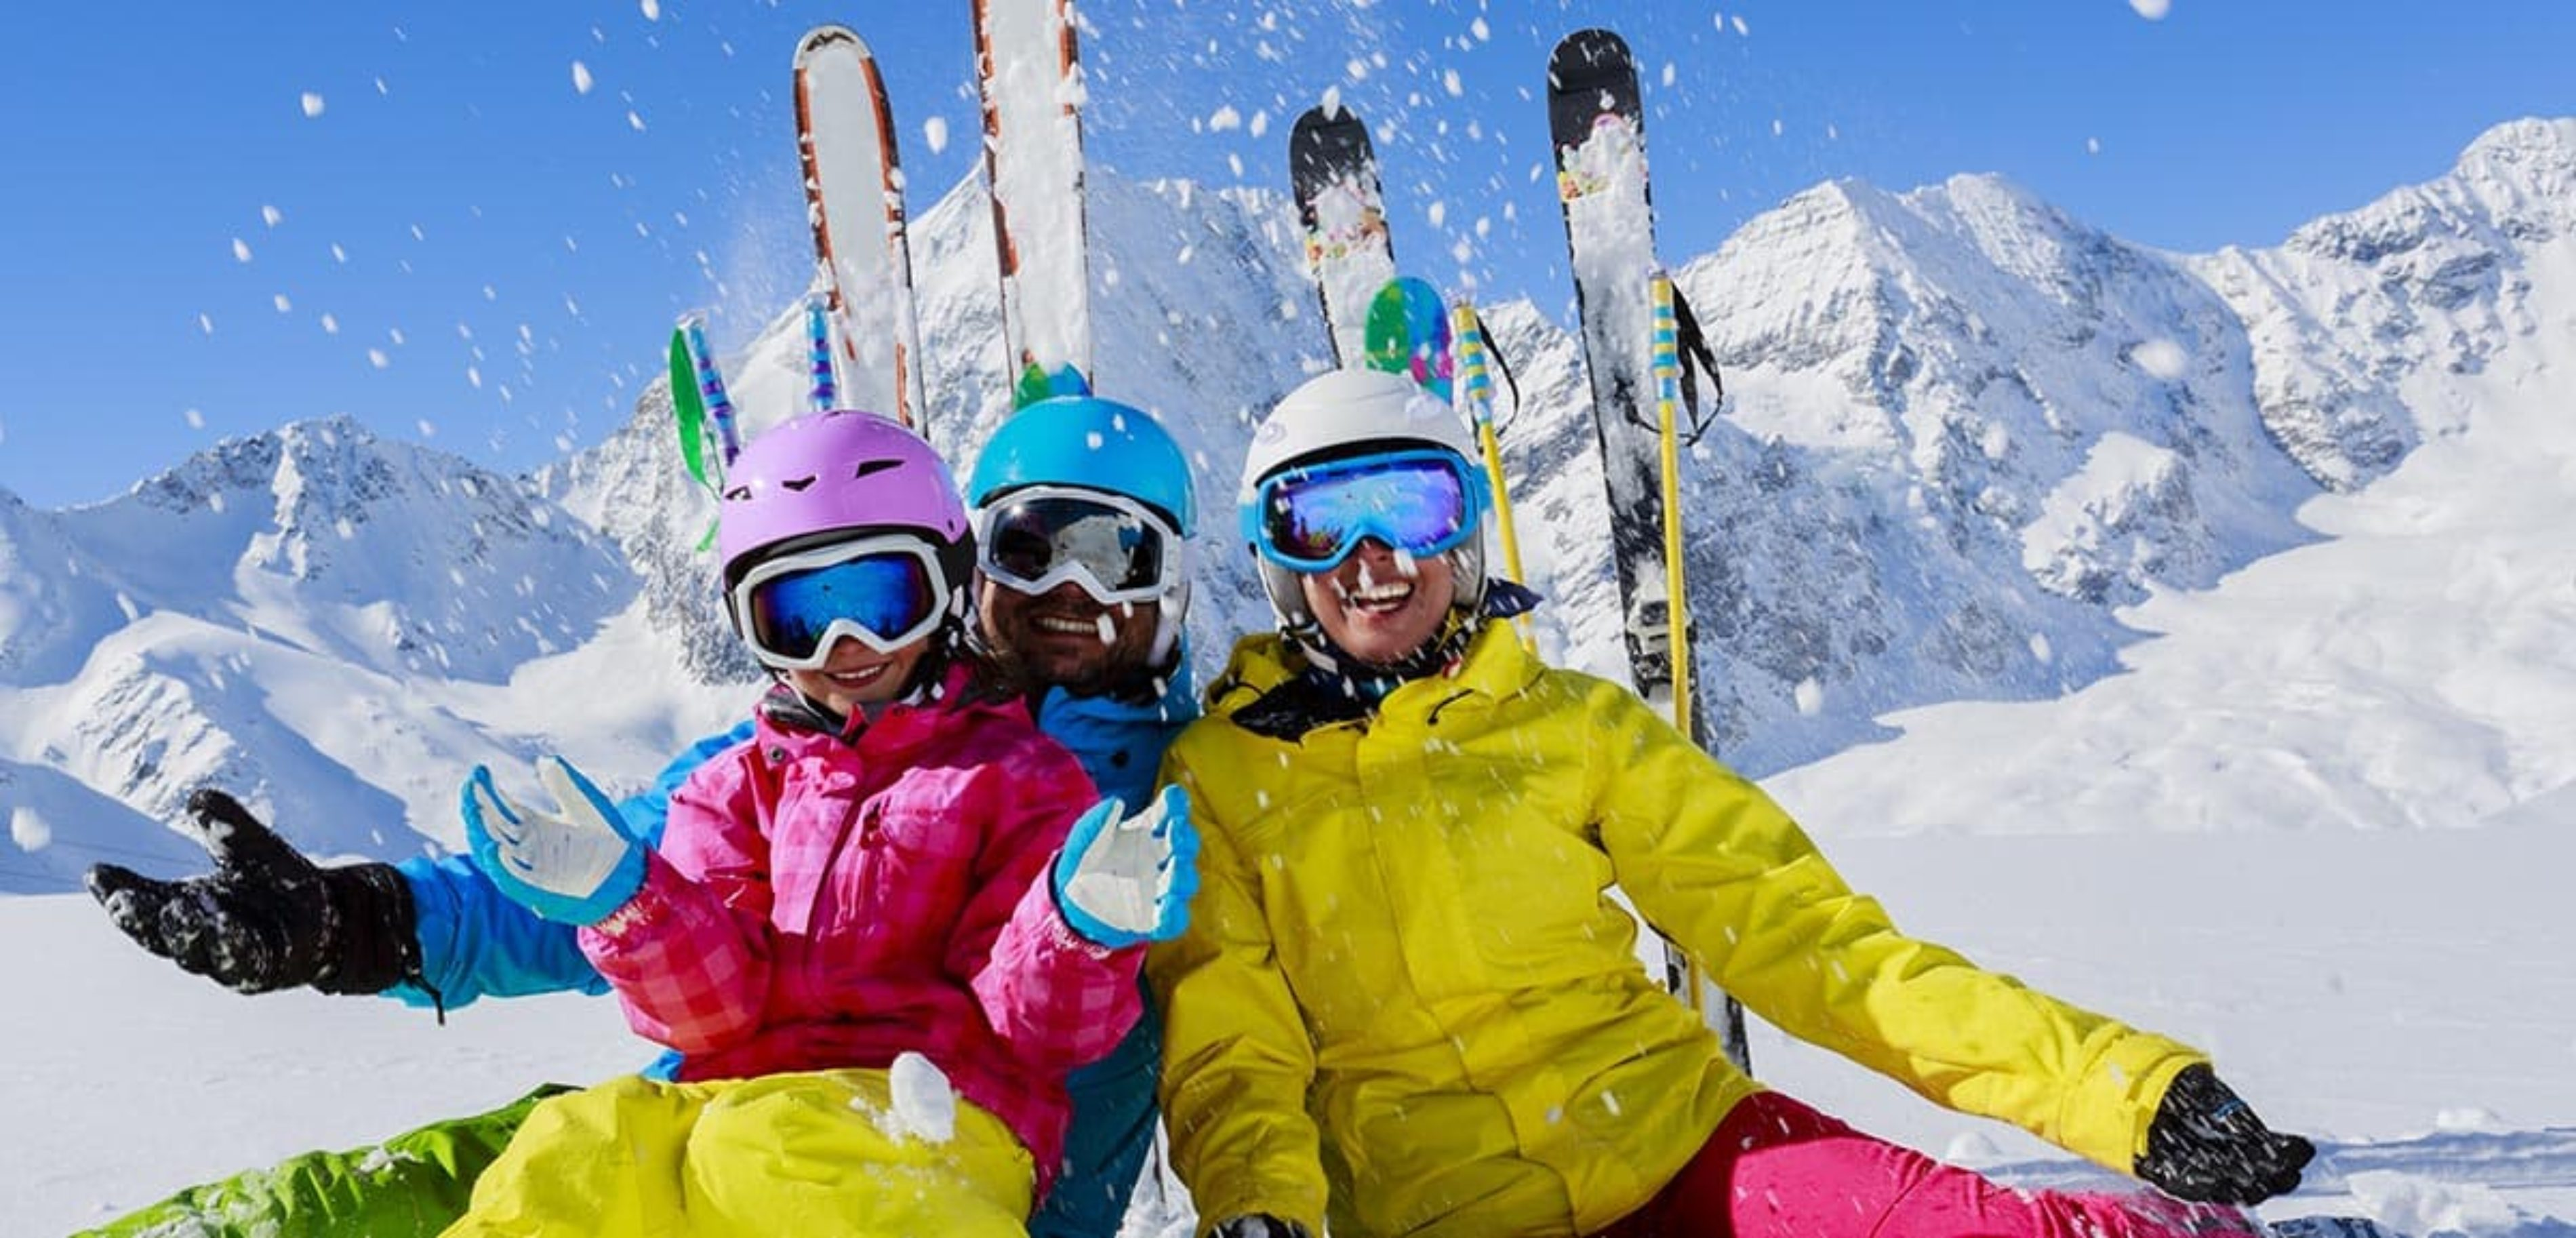 Family skiing on vacation